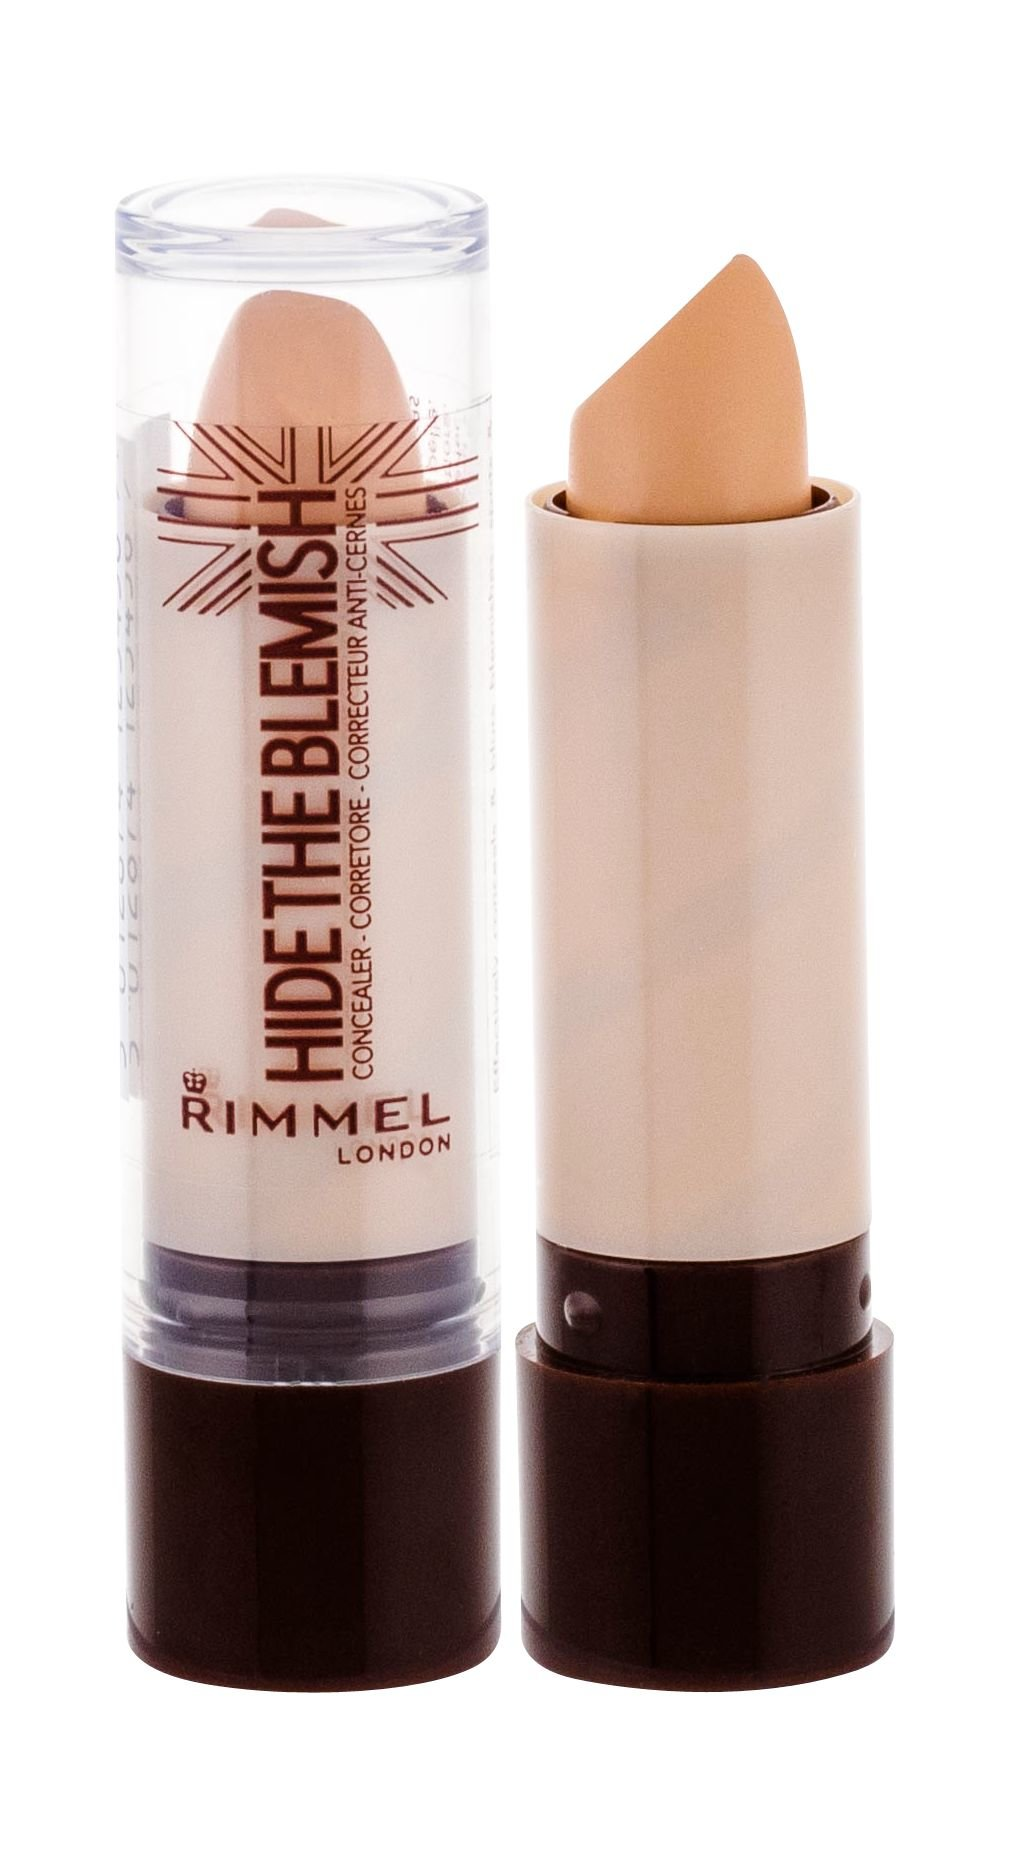 Rimmel London Hide The Blemish Cosmetic 4,5ml 004 Natural Beige